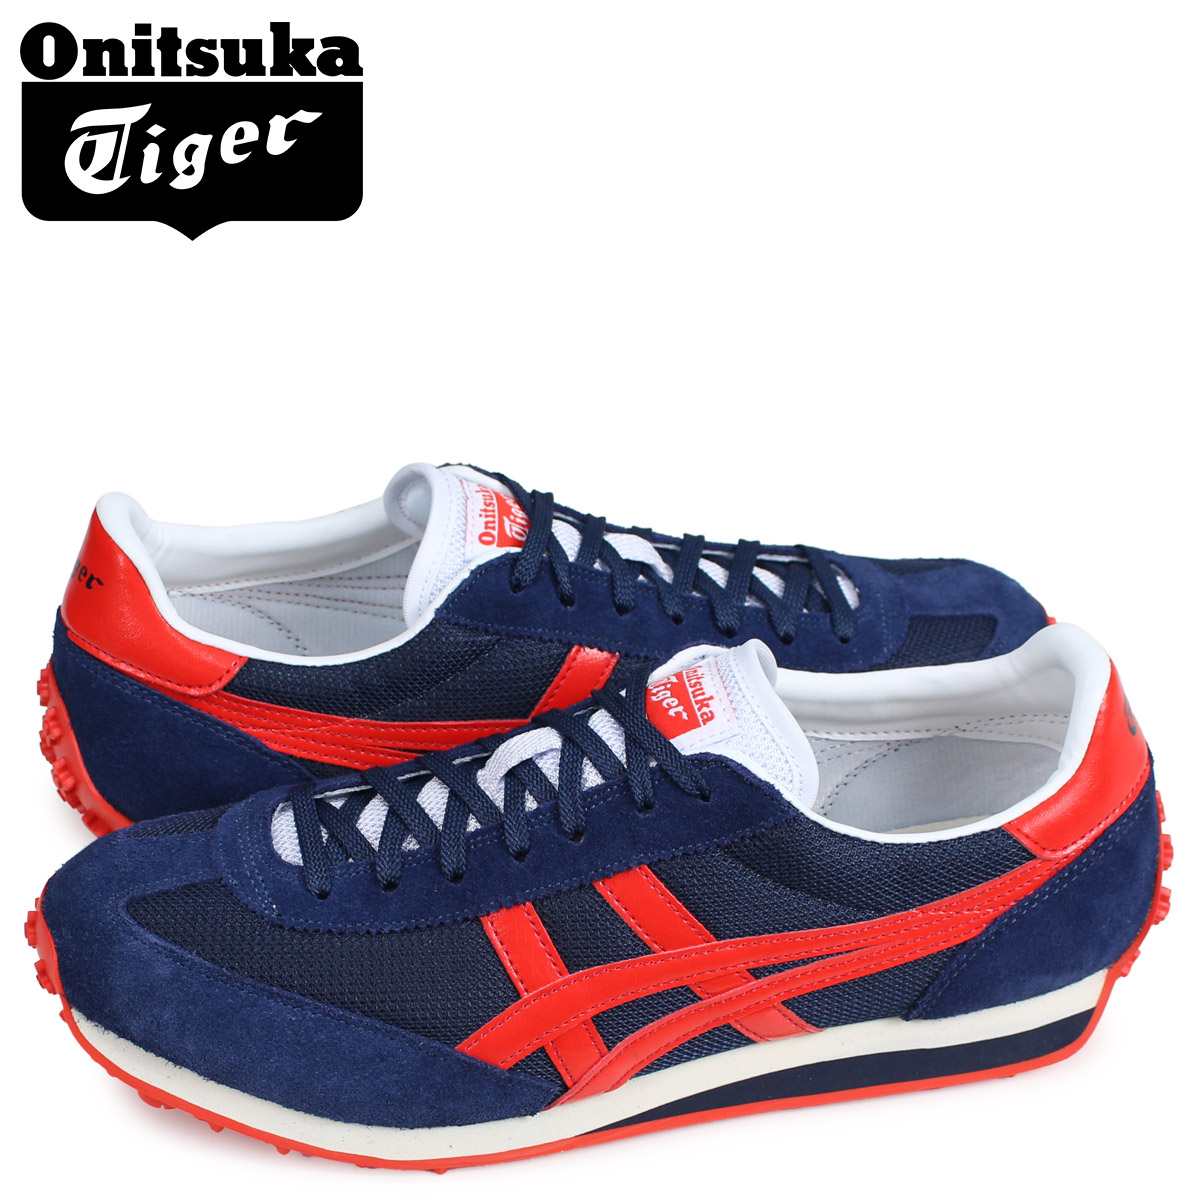 quality design dd1ea 52905 Onitsuka Tiger EDR 78 Onitsuka tiger Edy are 78 men's lady's sneakers  TH503N-5030 navy [8/1 reentry load] [197]